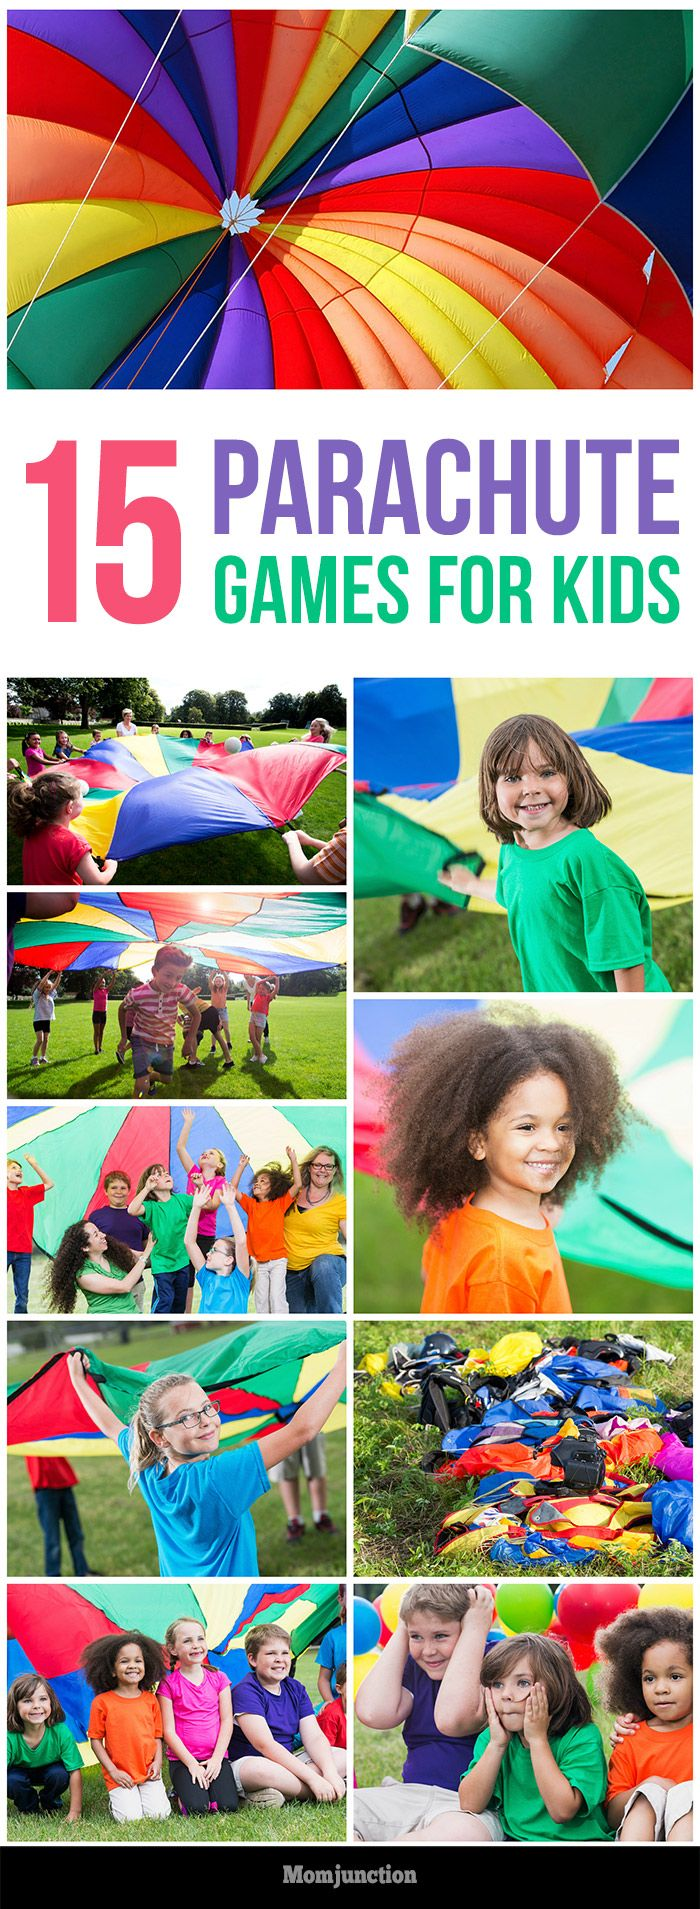 手机壳定制primark online shopping clothing Top  Parachute Games For Kids gear up for some fun with these  parachute games for your kids